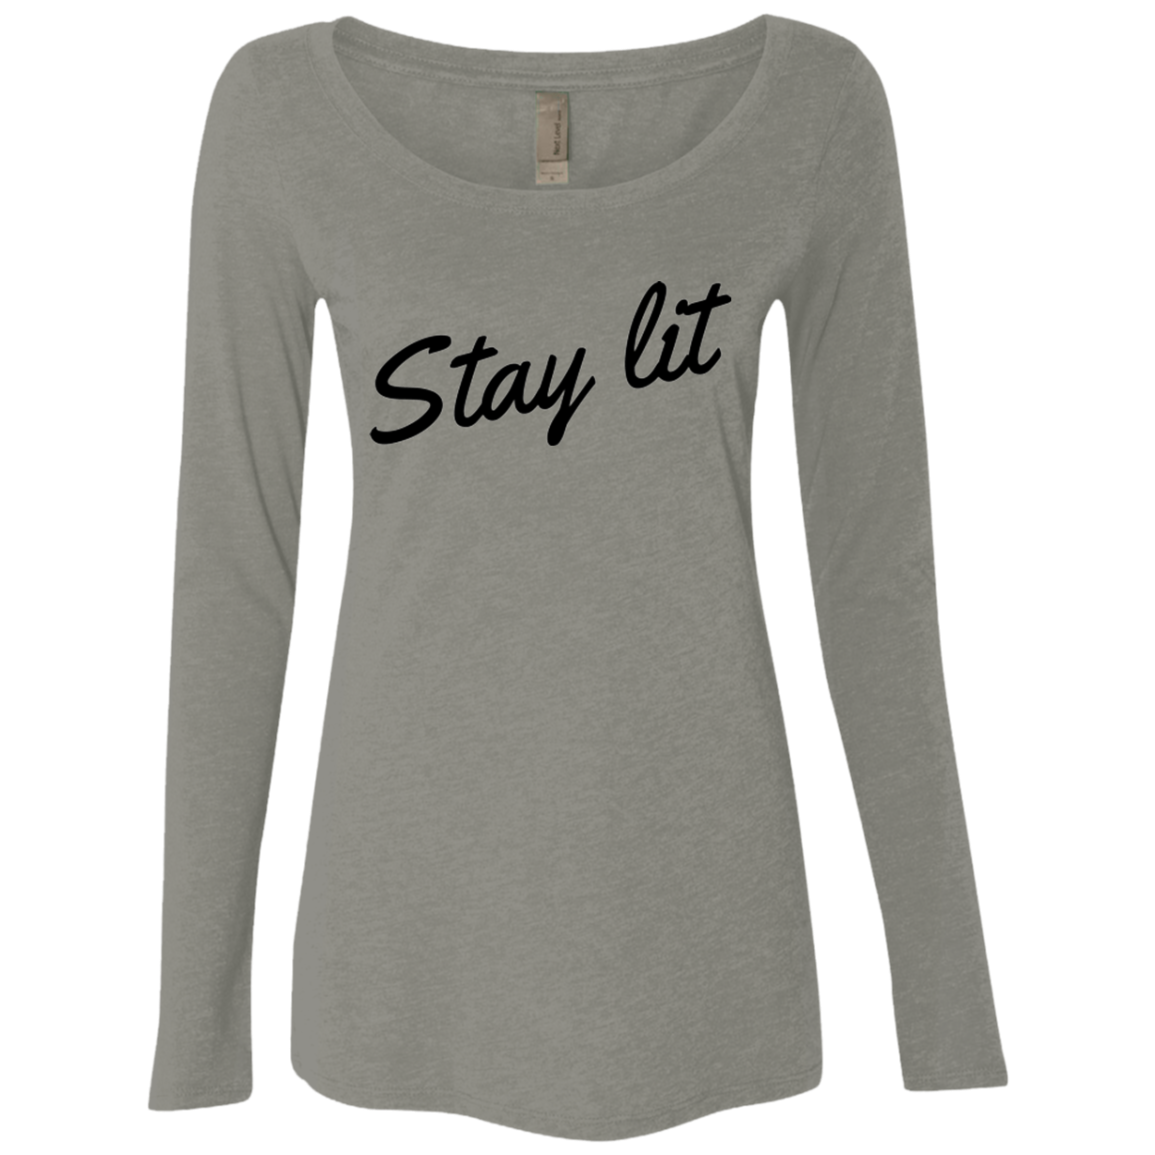 Stay Lit Women's Long Sleeve Tee